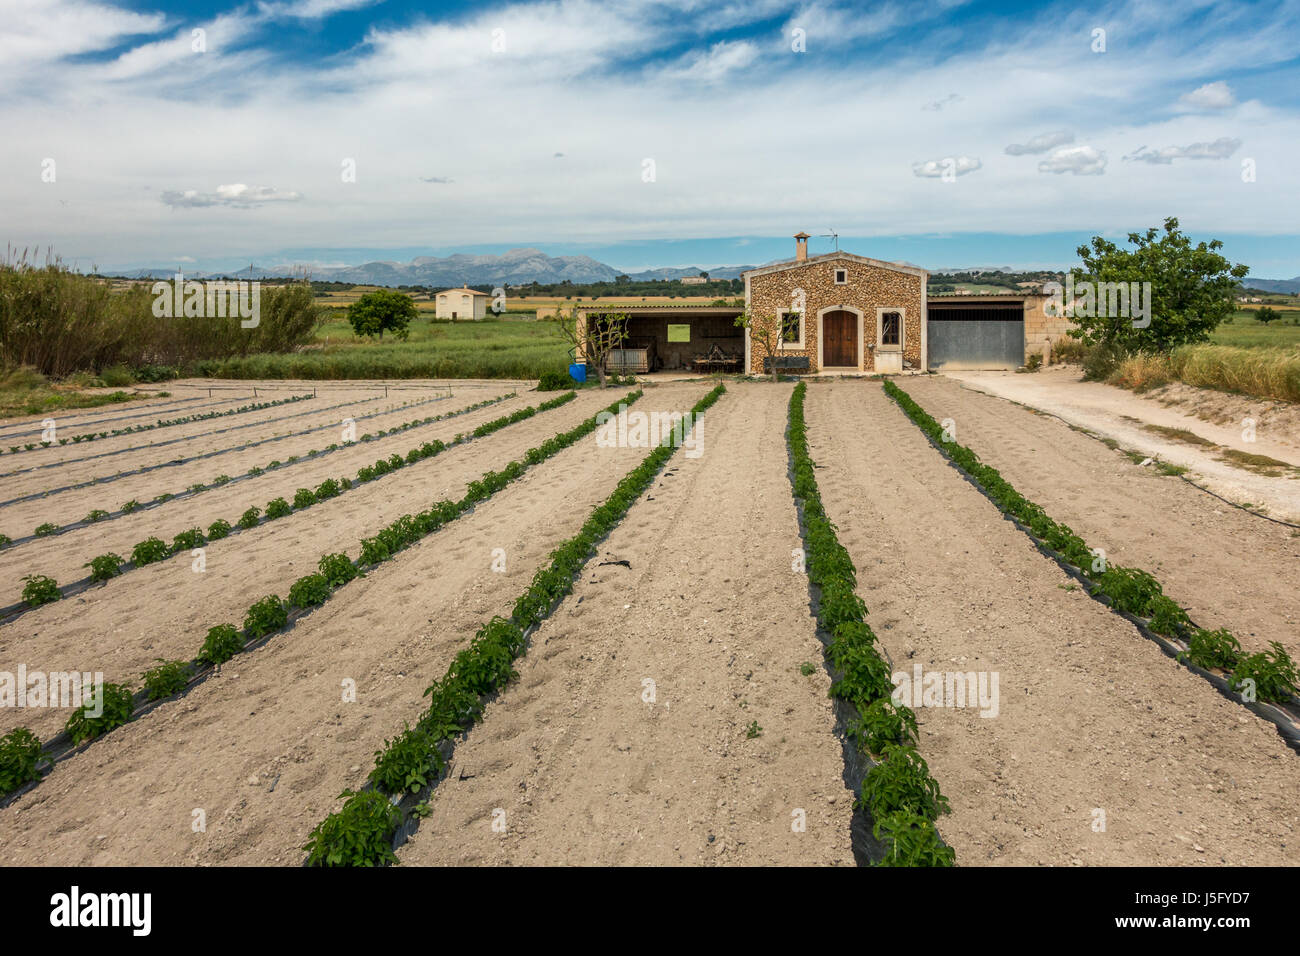 Growing crops in lines on a farm in north Mallorcan countryside, Majorca, Balearic Islands, Spain Stock Photo